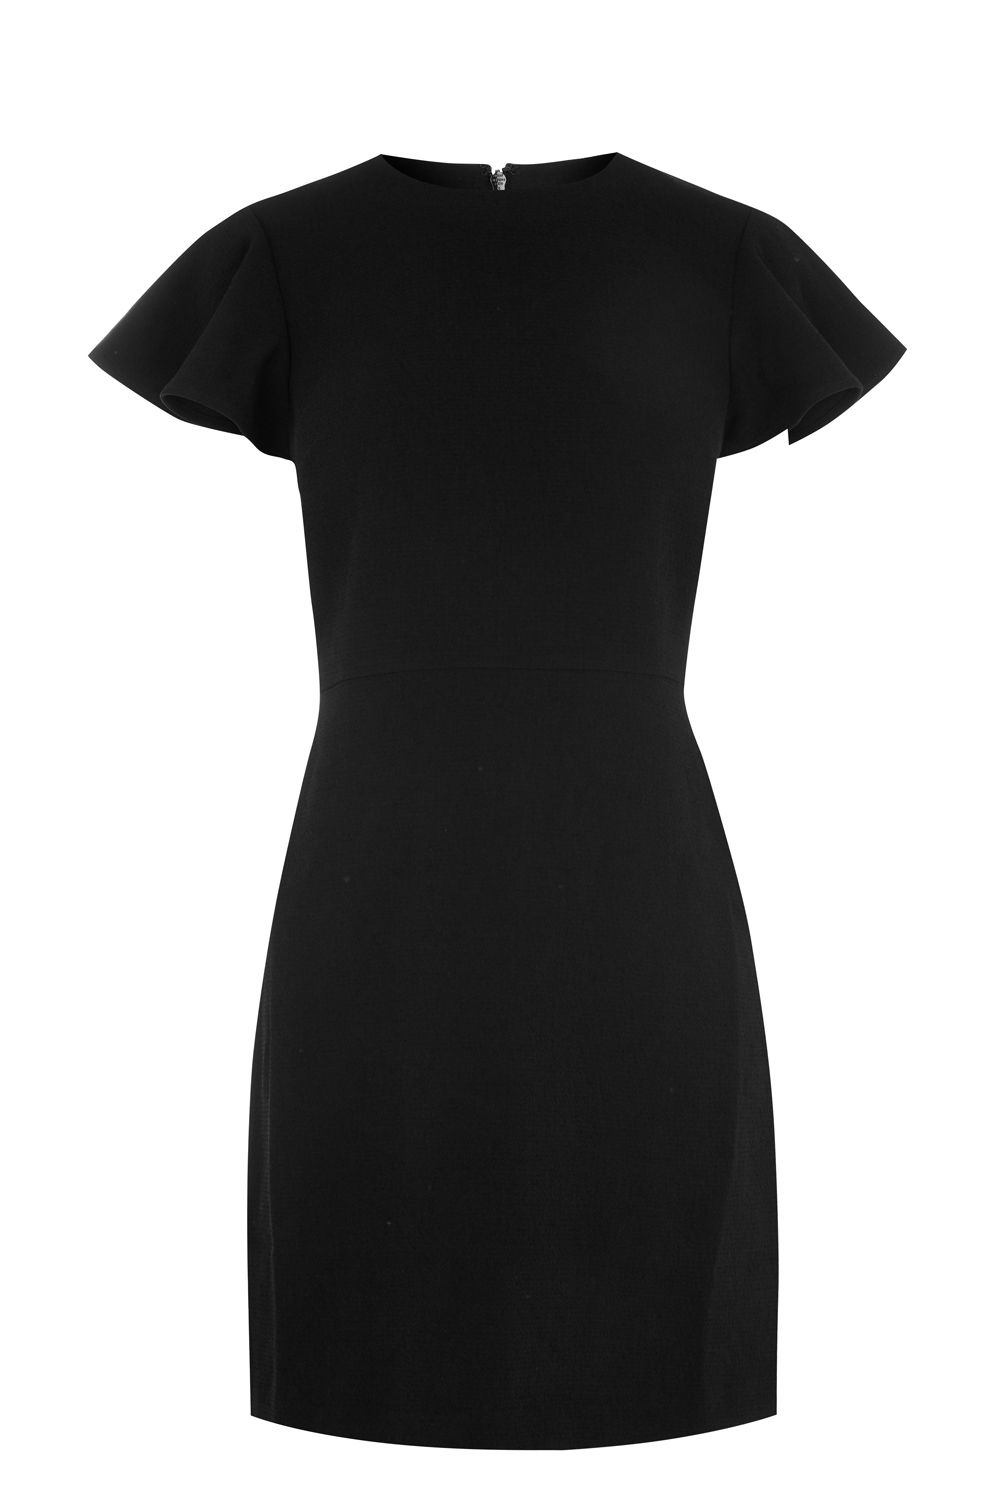 Warehouse Frill Sleeve Crepe Dress, Black